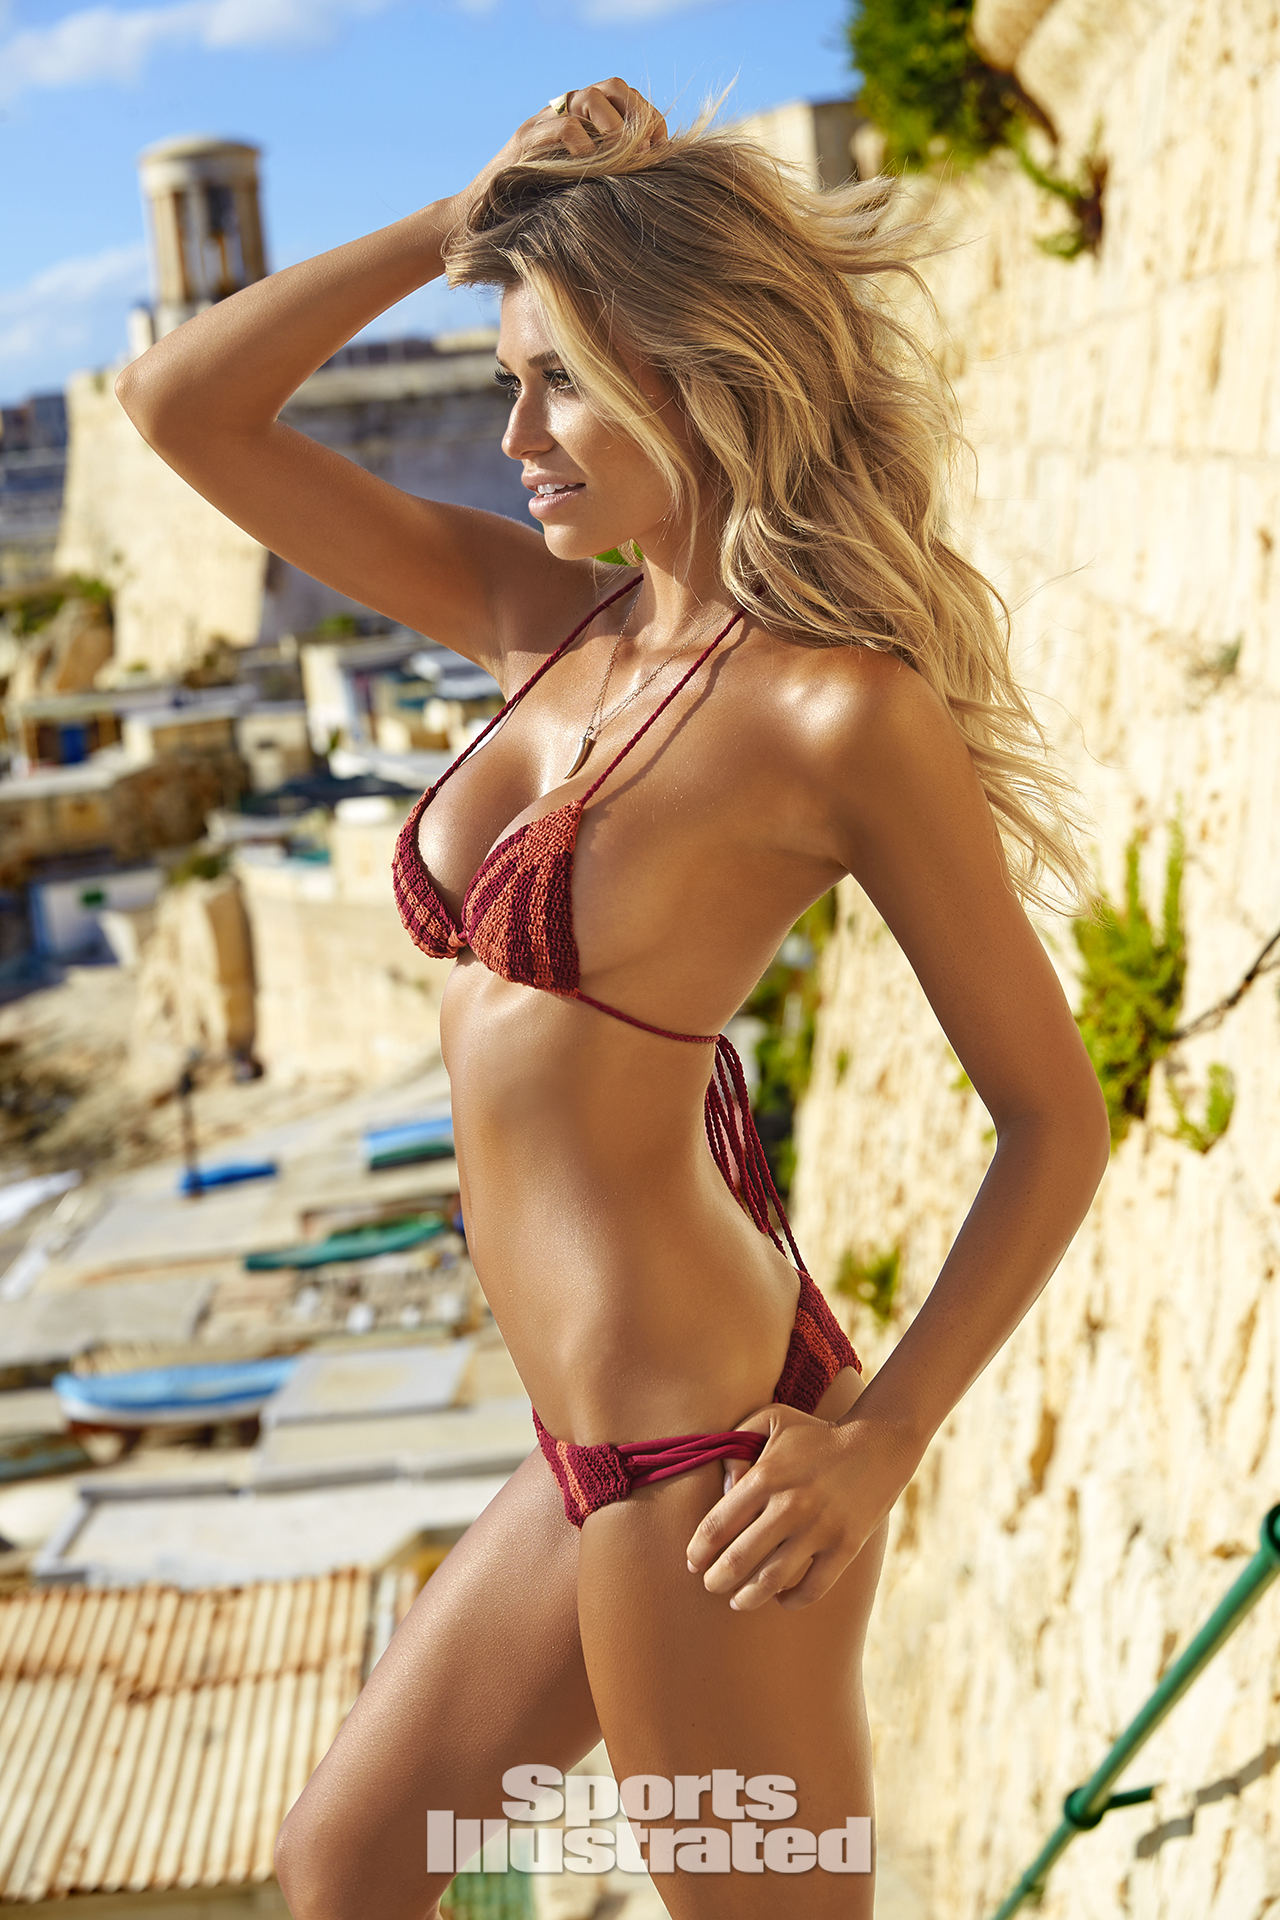 Samantha Hoopes was photographed by Ben Watts in Malta. Swimsuit by R O V E S W I M.